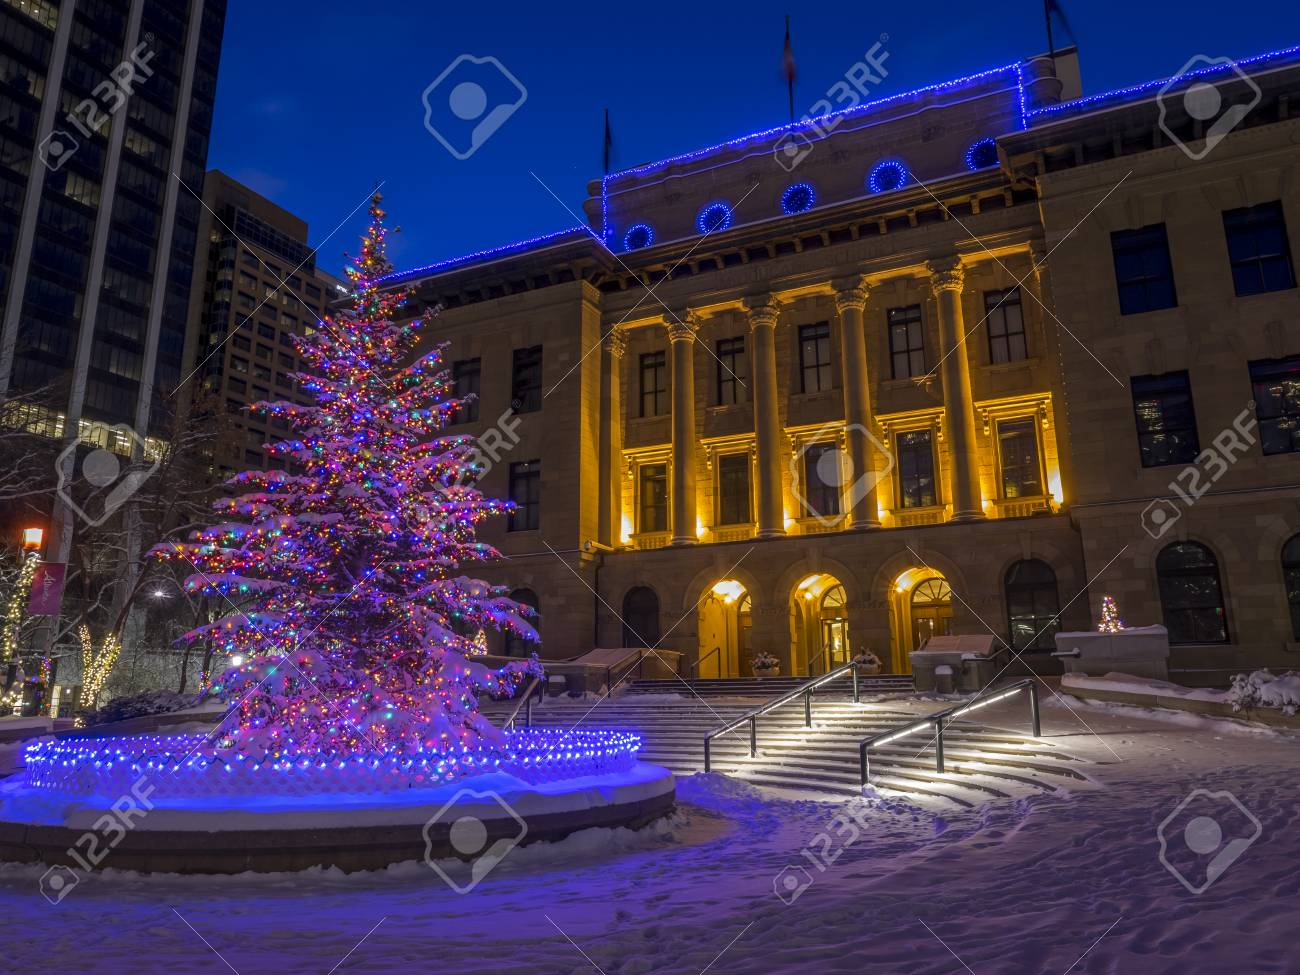 An Urban Park In Calgary At Night All Decorated For Christmas With Beautiful  Christmas Lights.